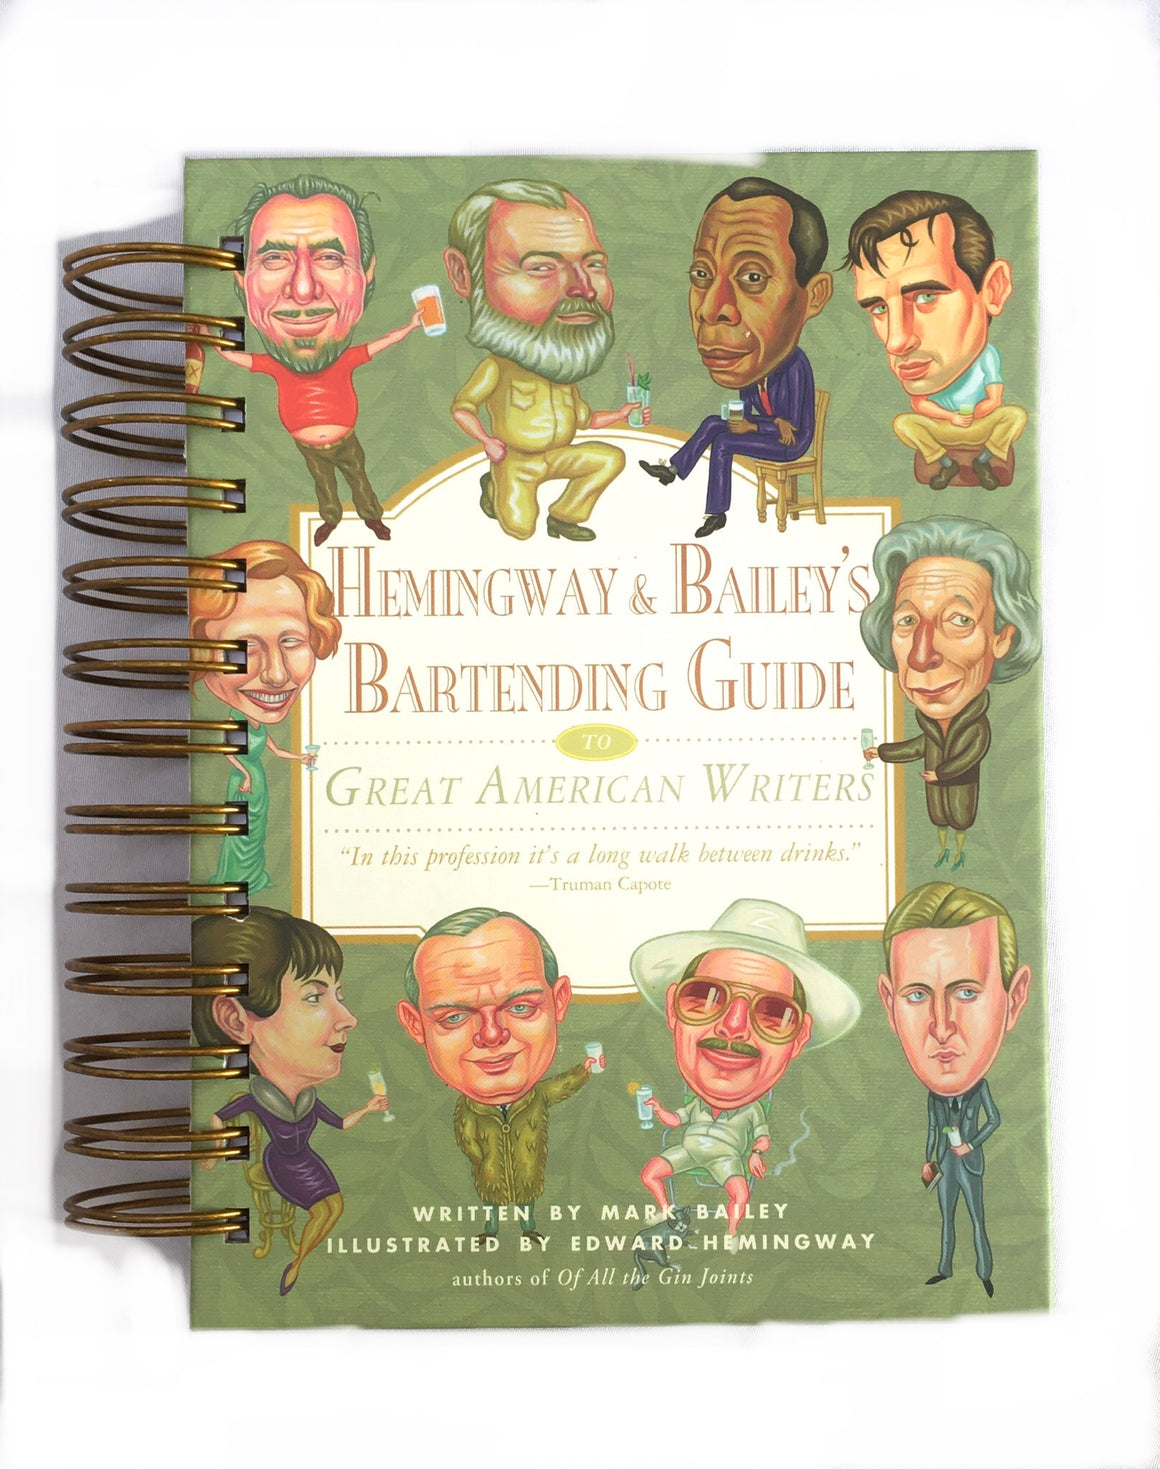 Hemingway & Bailey's Bartending Guide-Red Barn Collections